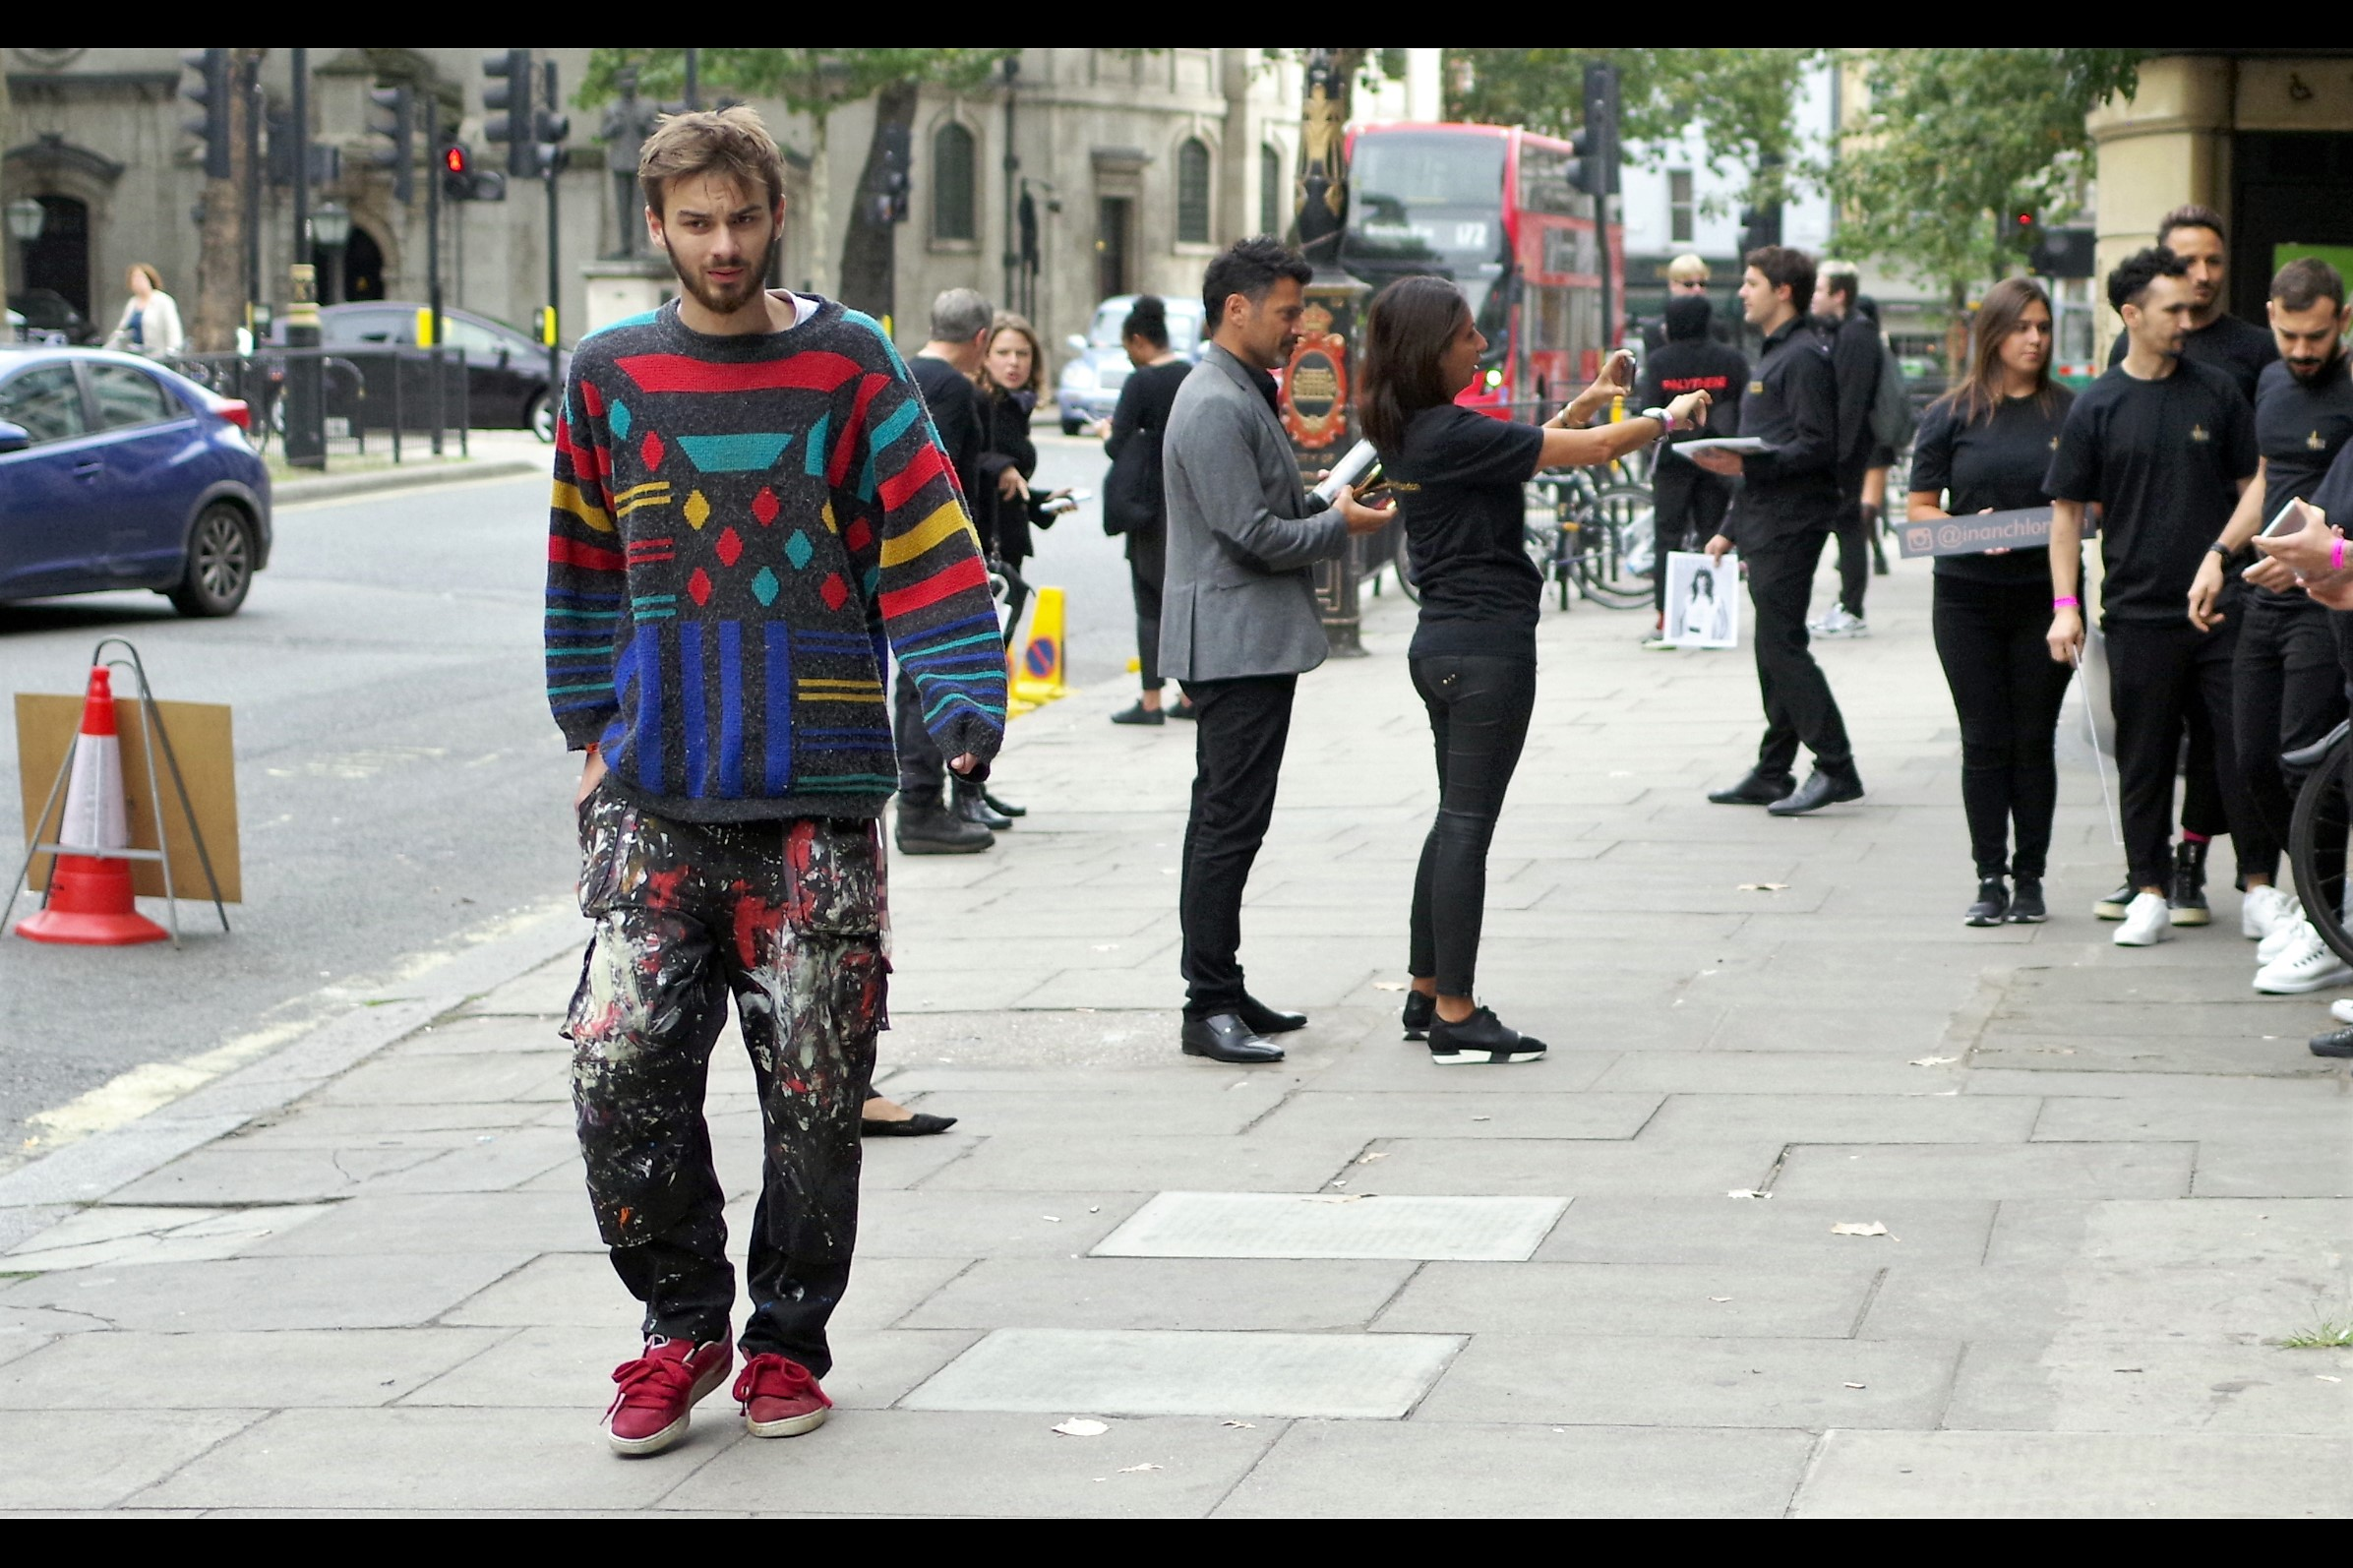 """""""I fought a homeless guy and he threw paint at me… now everyone's offering me thousands of pounds for my 'Fashion'… how do I escape this nightmare??"""""""